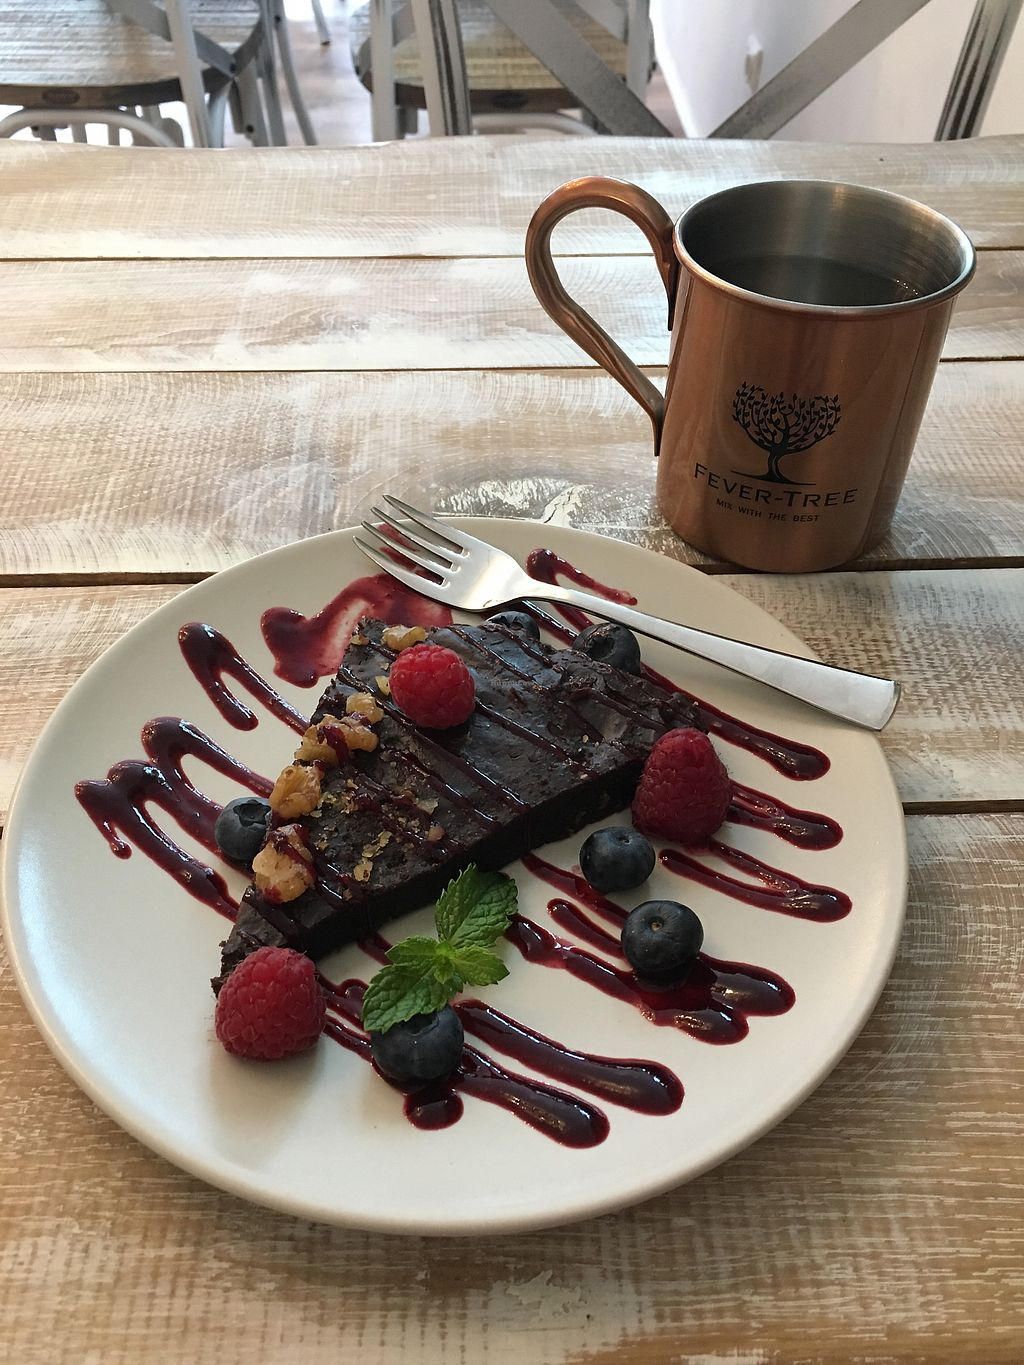 """Photo of Veggiezz - Opernring  by <a href=""""/members/profile/LilyHarper"""">LilyHarper</a> <br/>Chocolate brownie and earl grey tea <br/> September 7, 2017  - <a href='/contact/abuse/image/96634/301793'>Report</a>"""